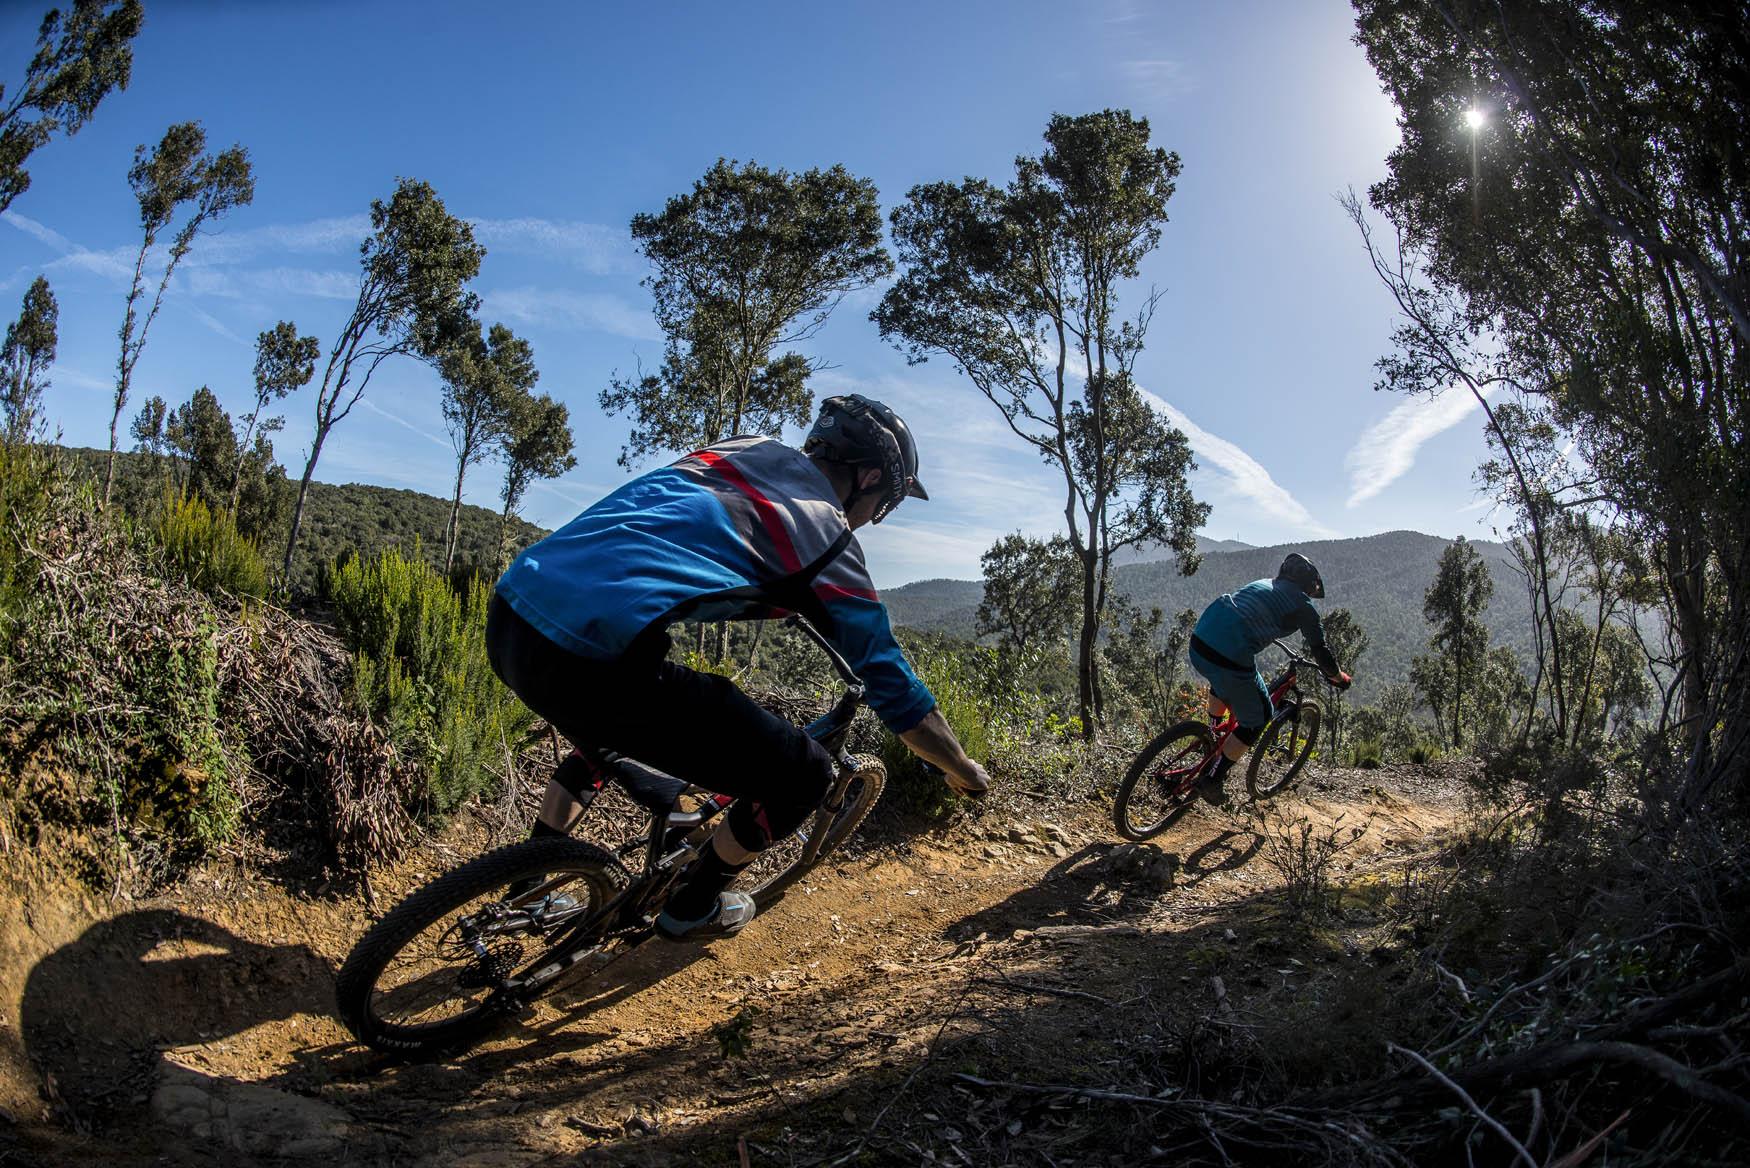 Mountain Biking UK Bike of the Year, Punta Ala, Tuscany  PIC © Andy Lloyd www.andylloyd.photography